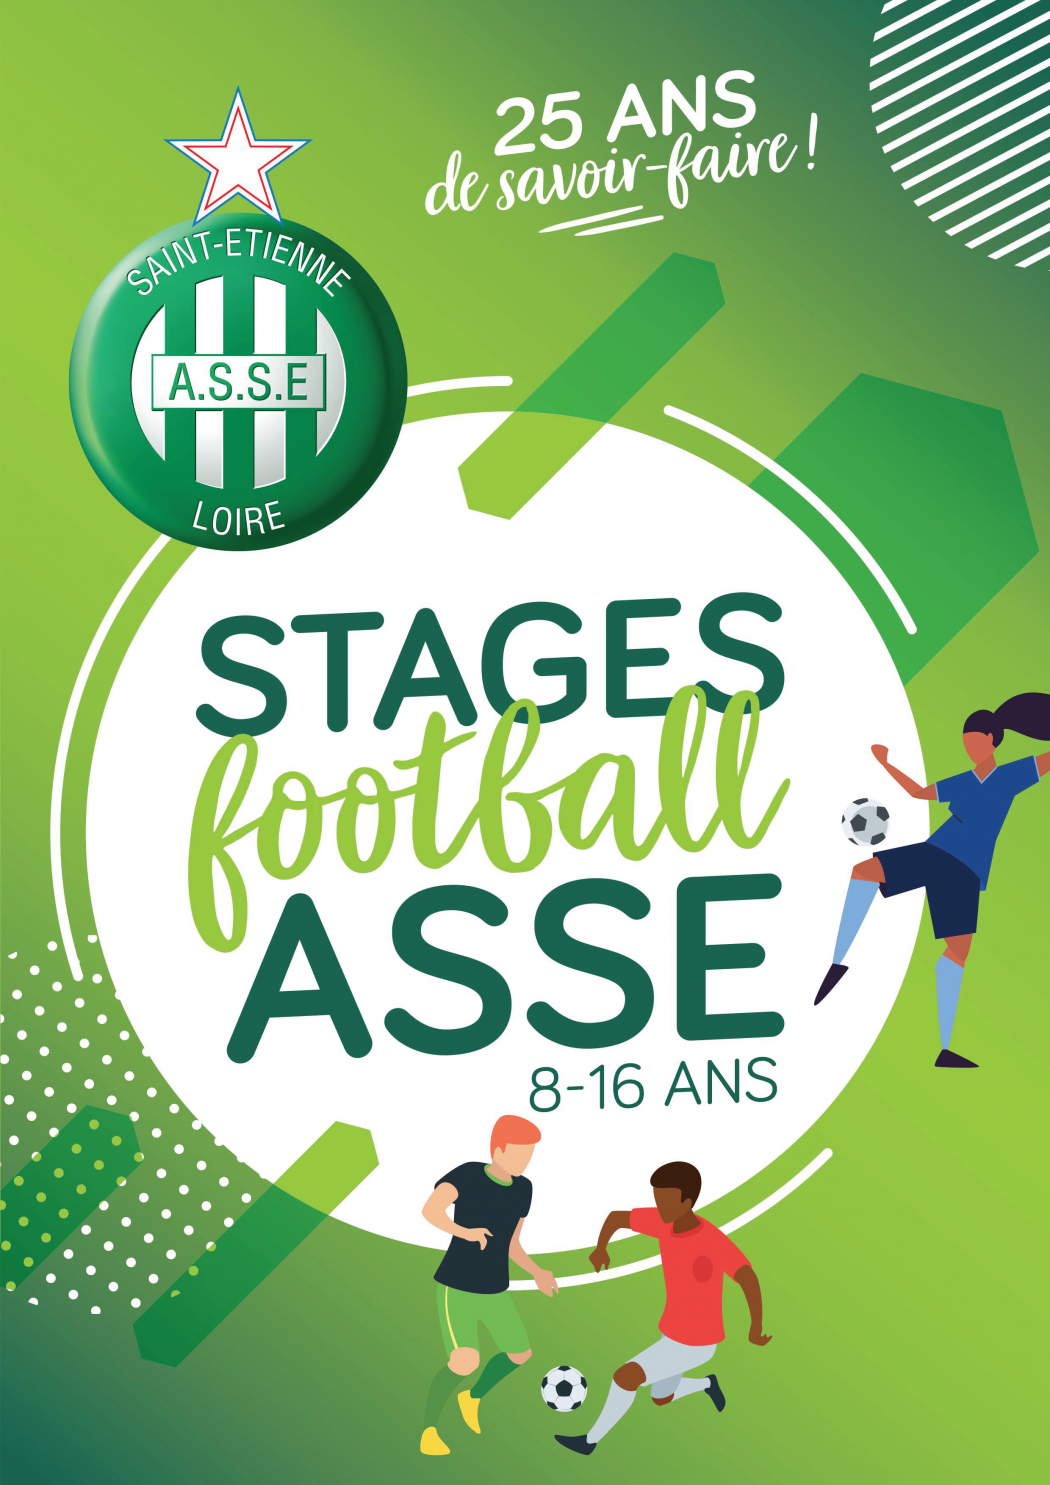 Asse Calendrier 2020.Stages D Ete 2020